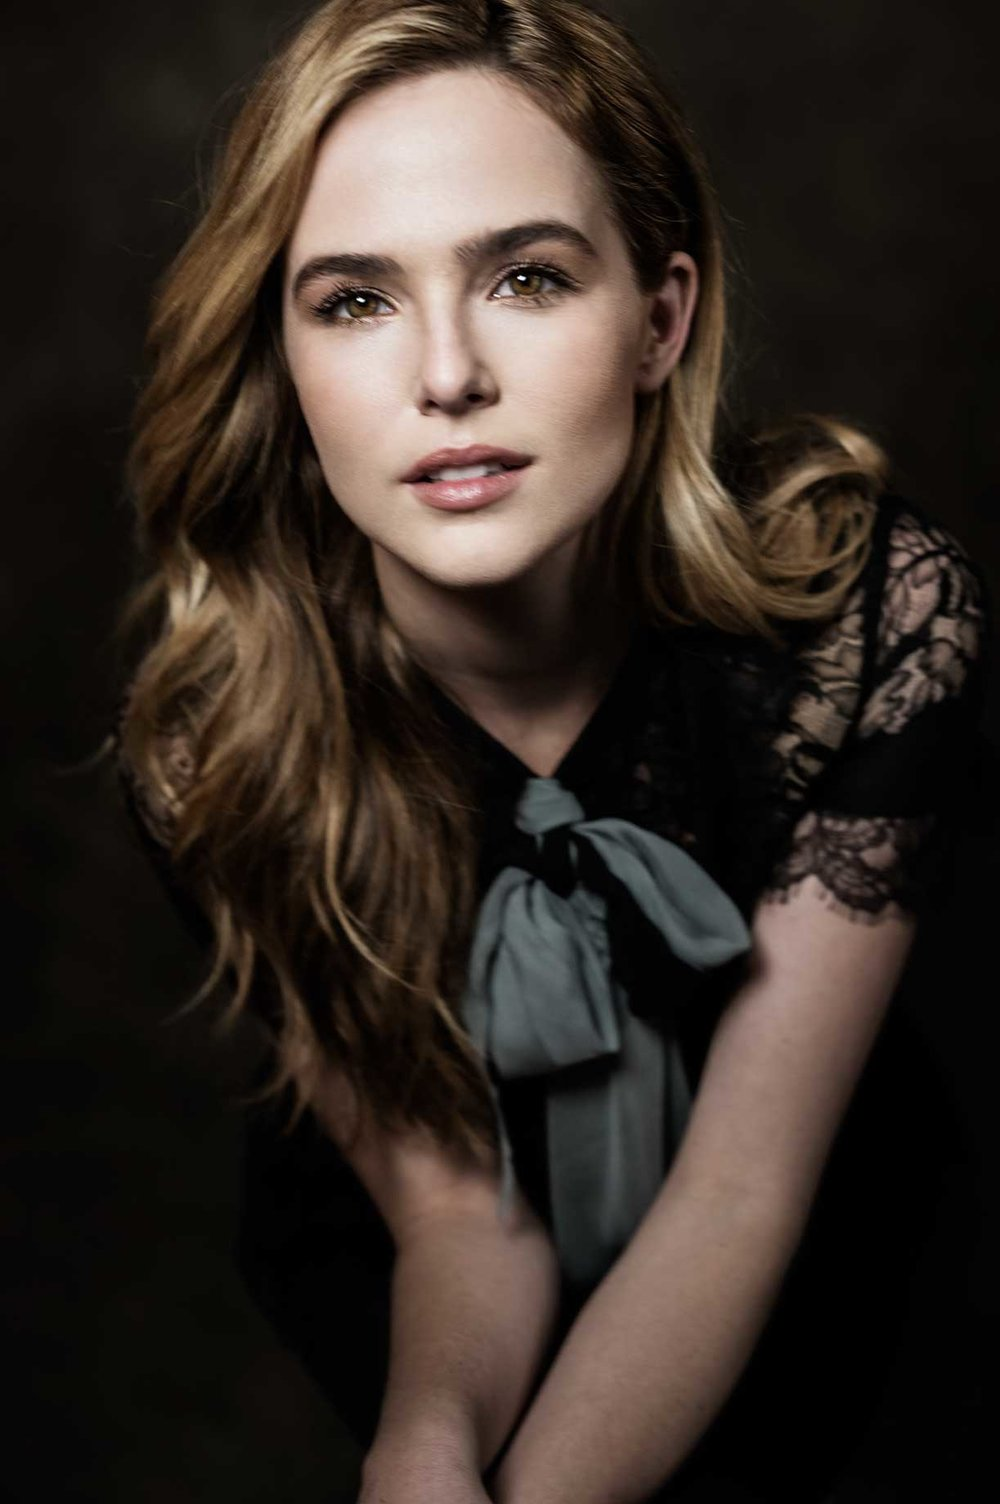 Zoey-Deutch---Vincent-n-Roxxy-00236-1.jpg